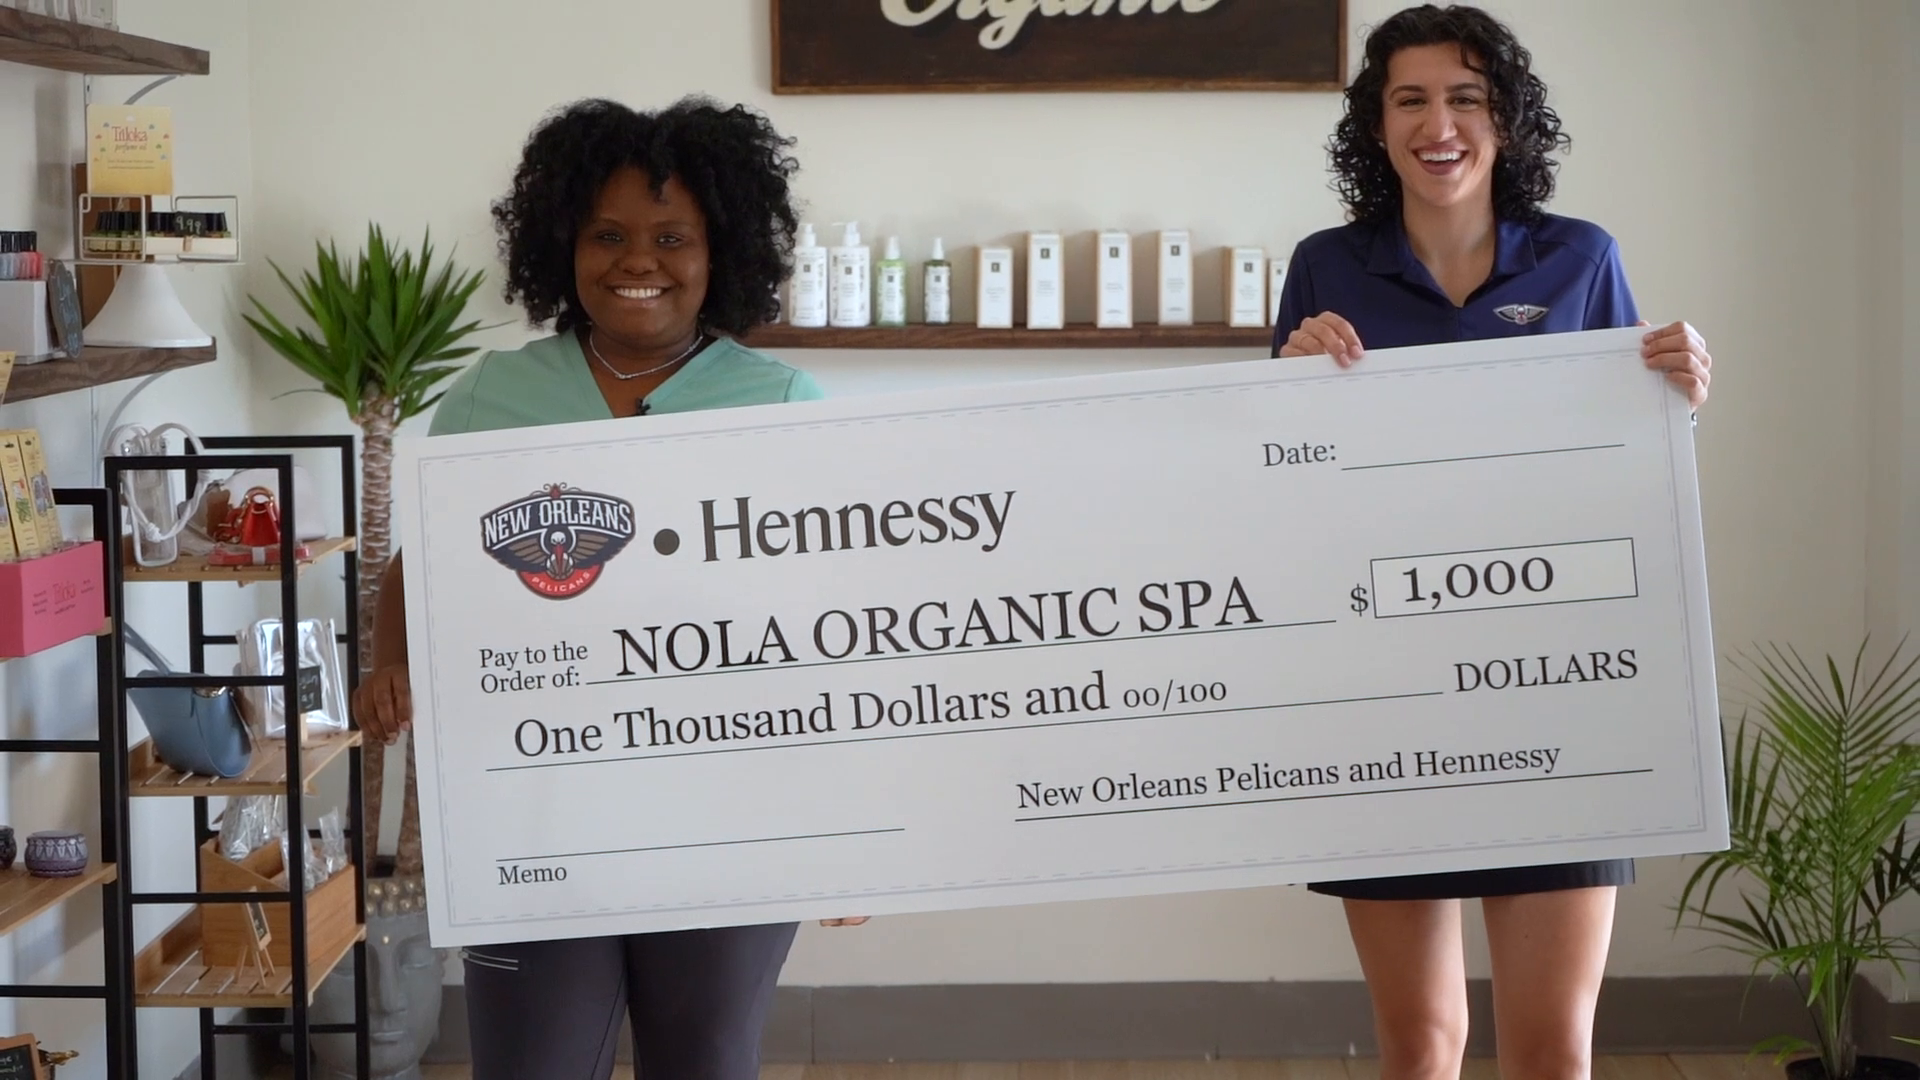 Pelicans, Hennessy Black Owned Business Spotlight: NOLA Organic Spa